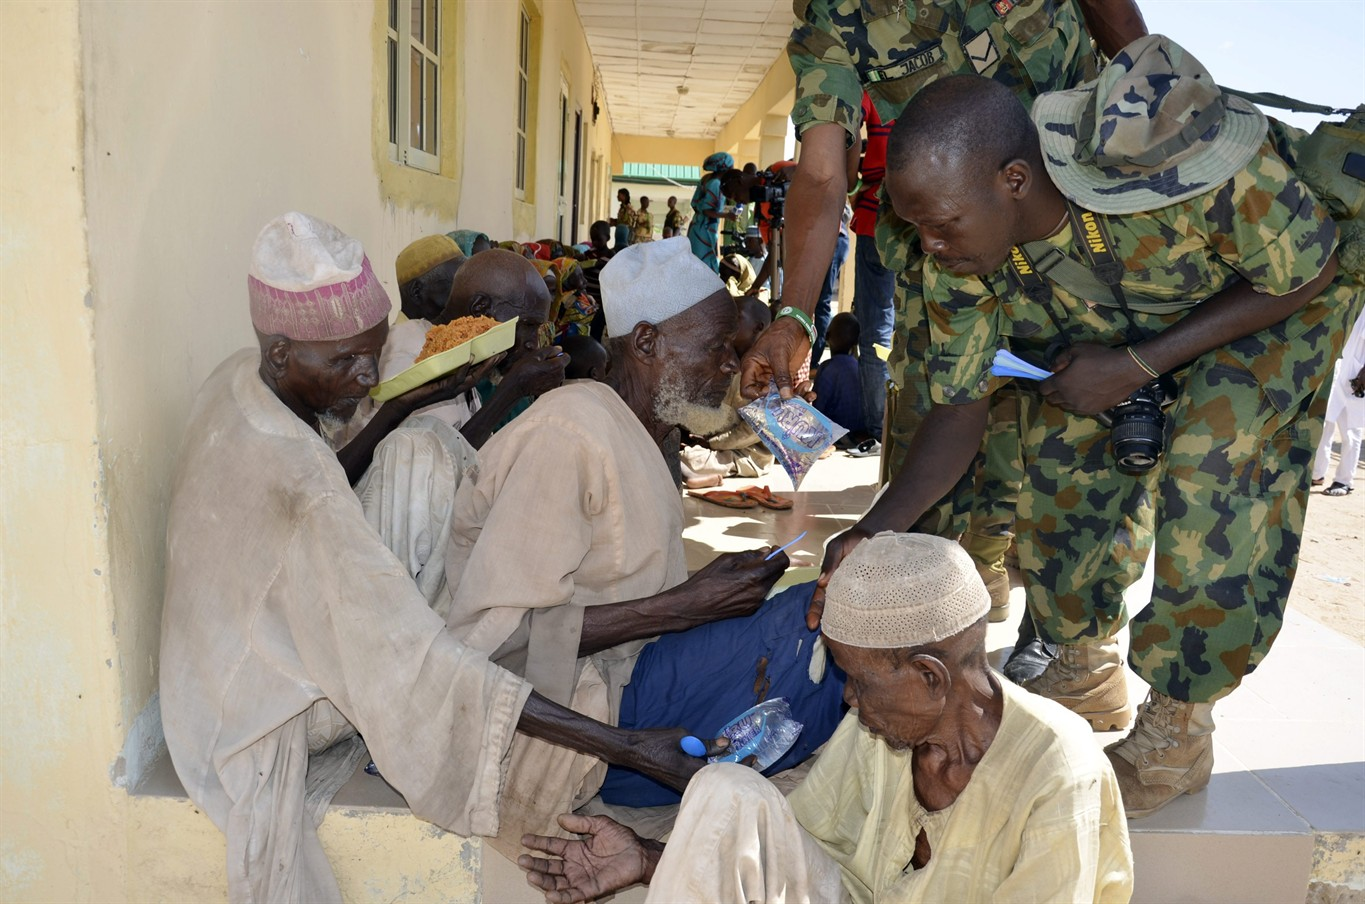 nigeria frees 71 people, mostly women, girls, from boko haram, hold